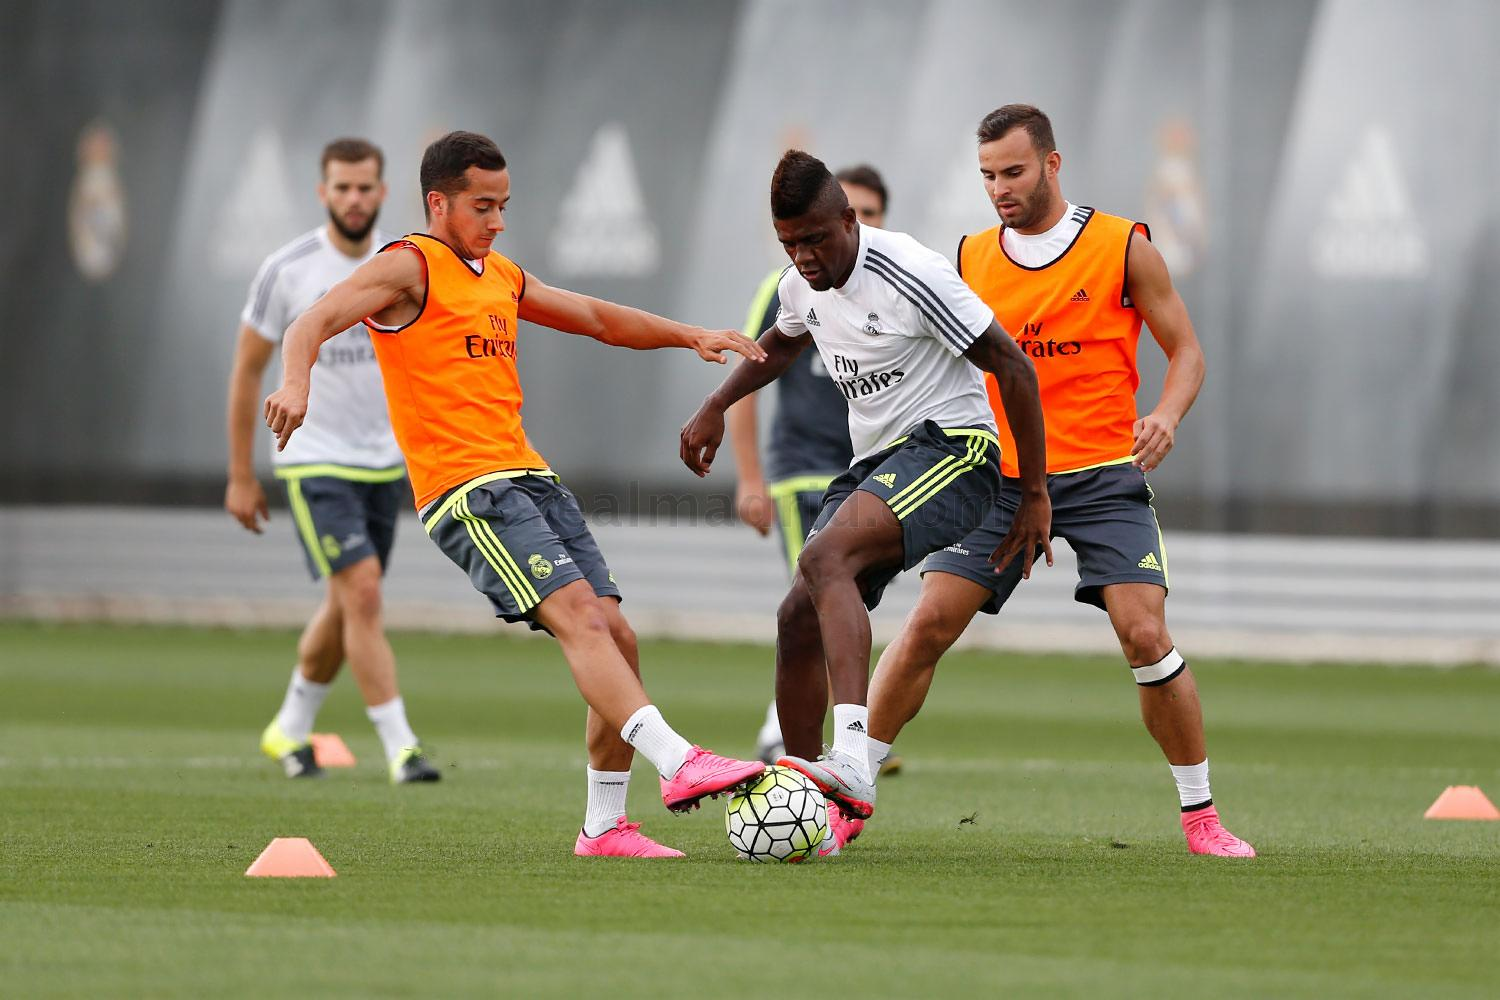 Real Madrid - Entrenamiento del Real Madrid - 07-09-2015